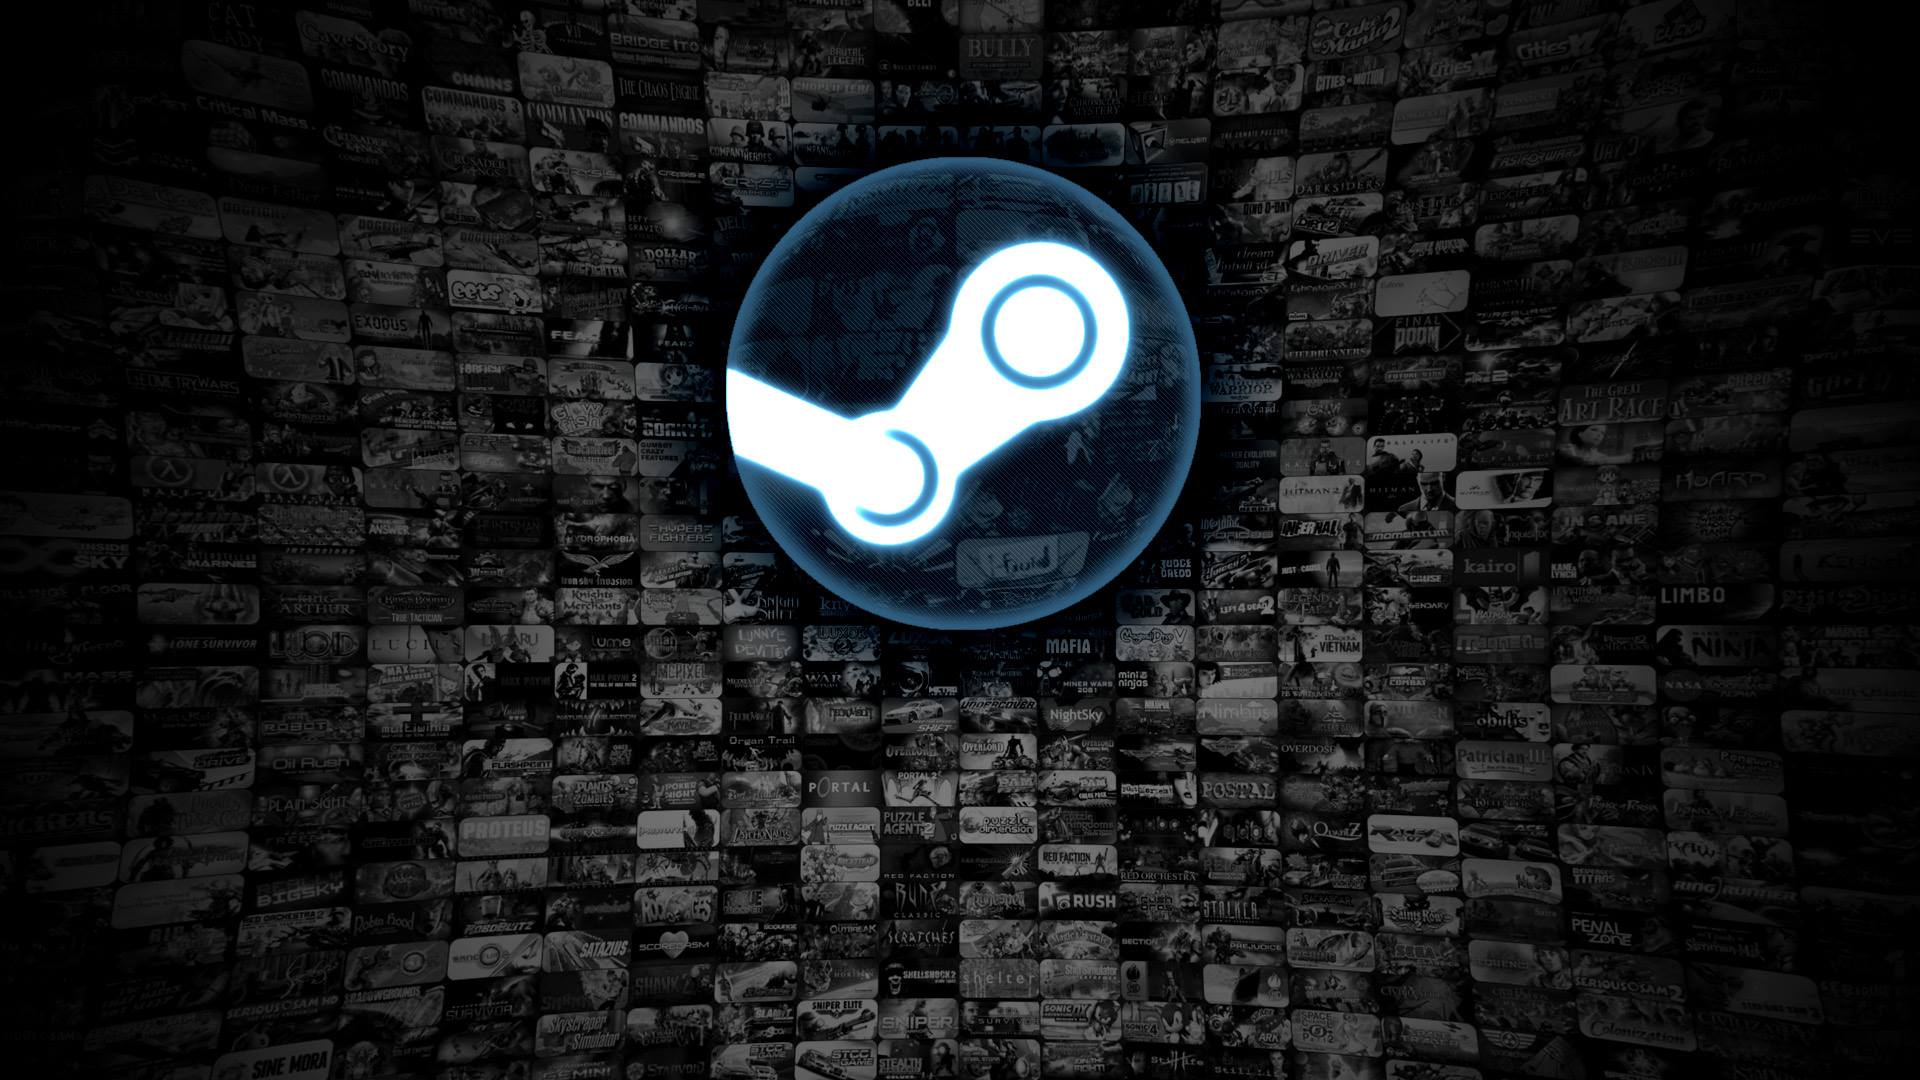 Steam ends support for Bitcoin due to high fees, volatility